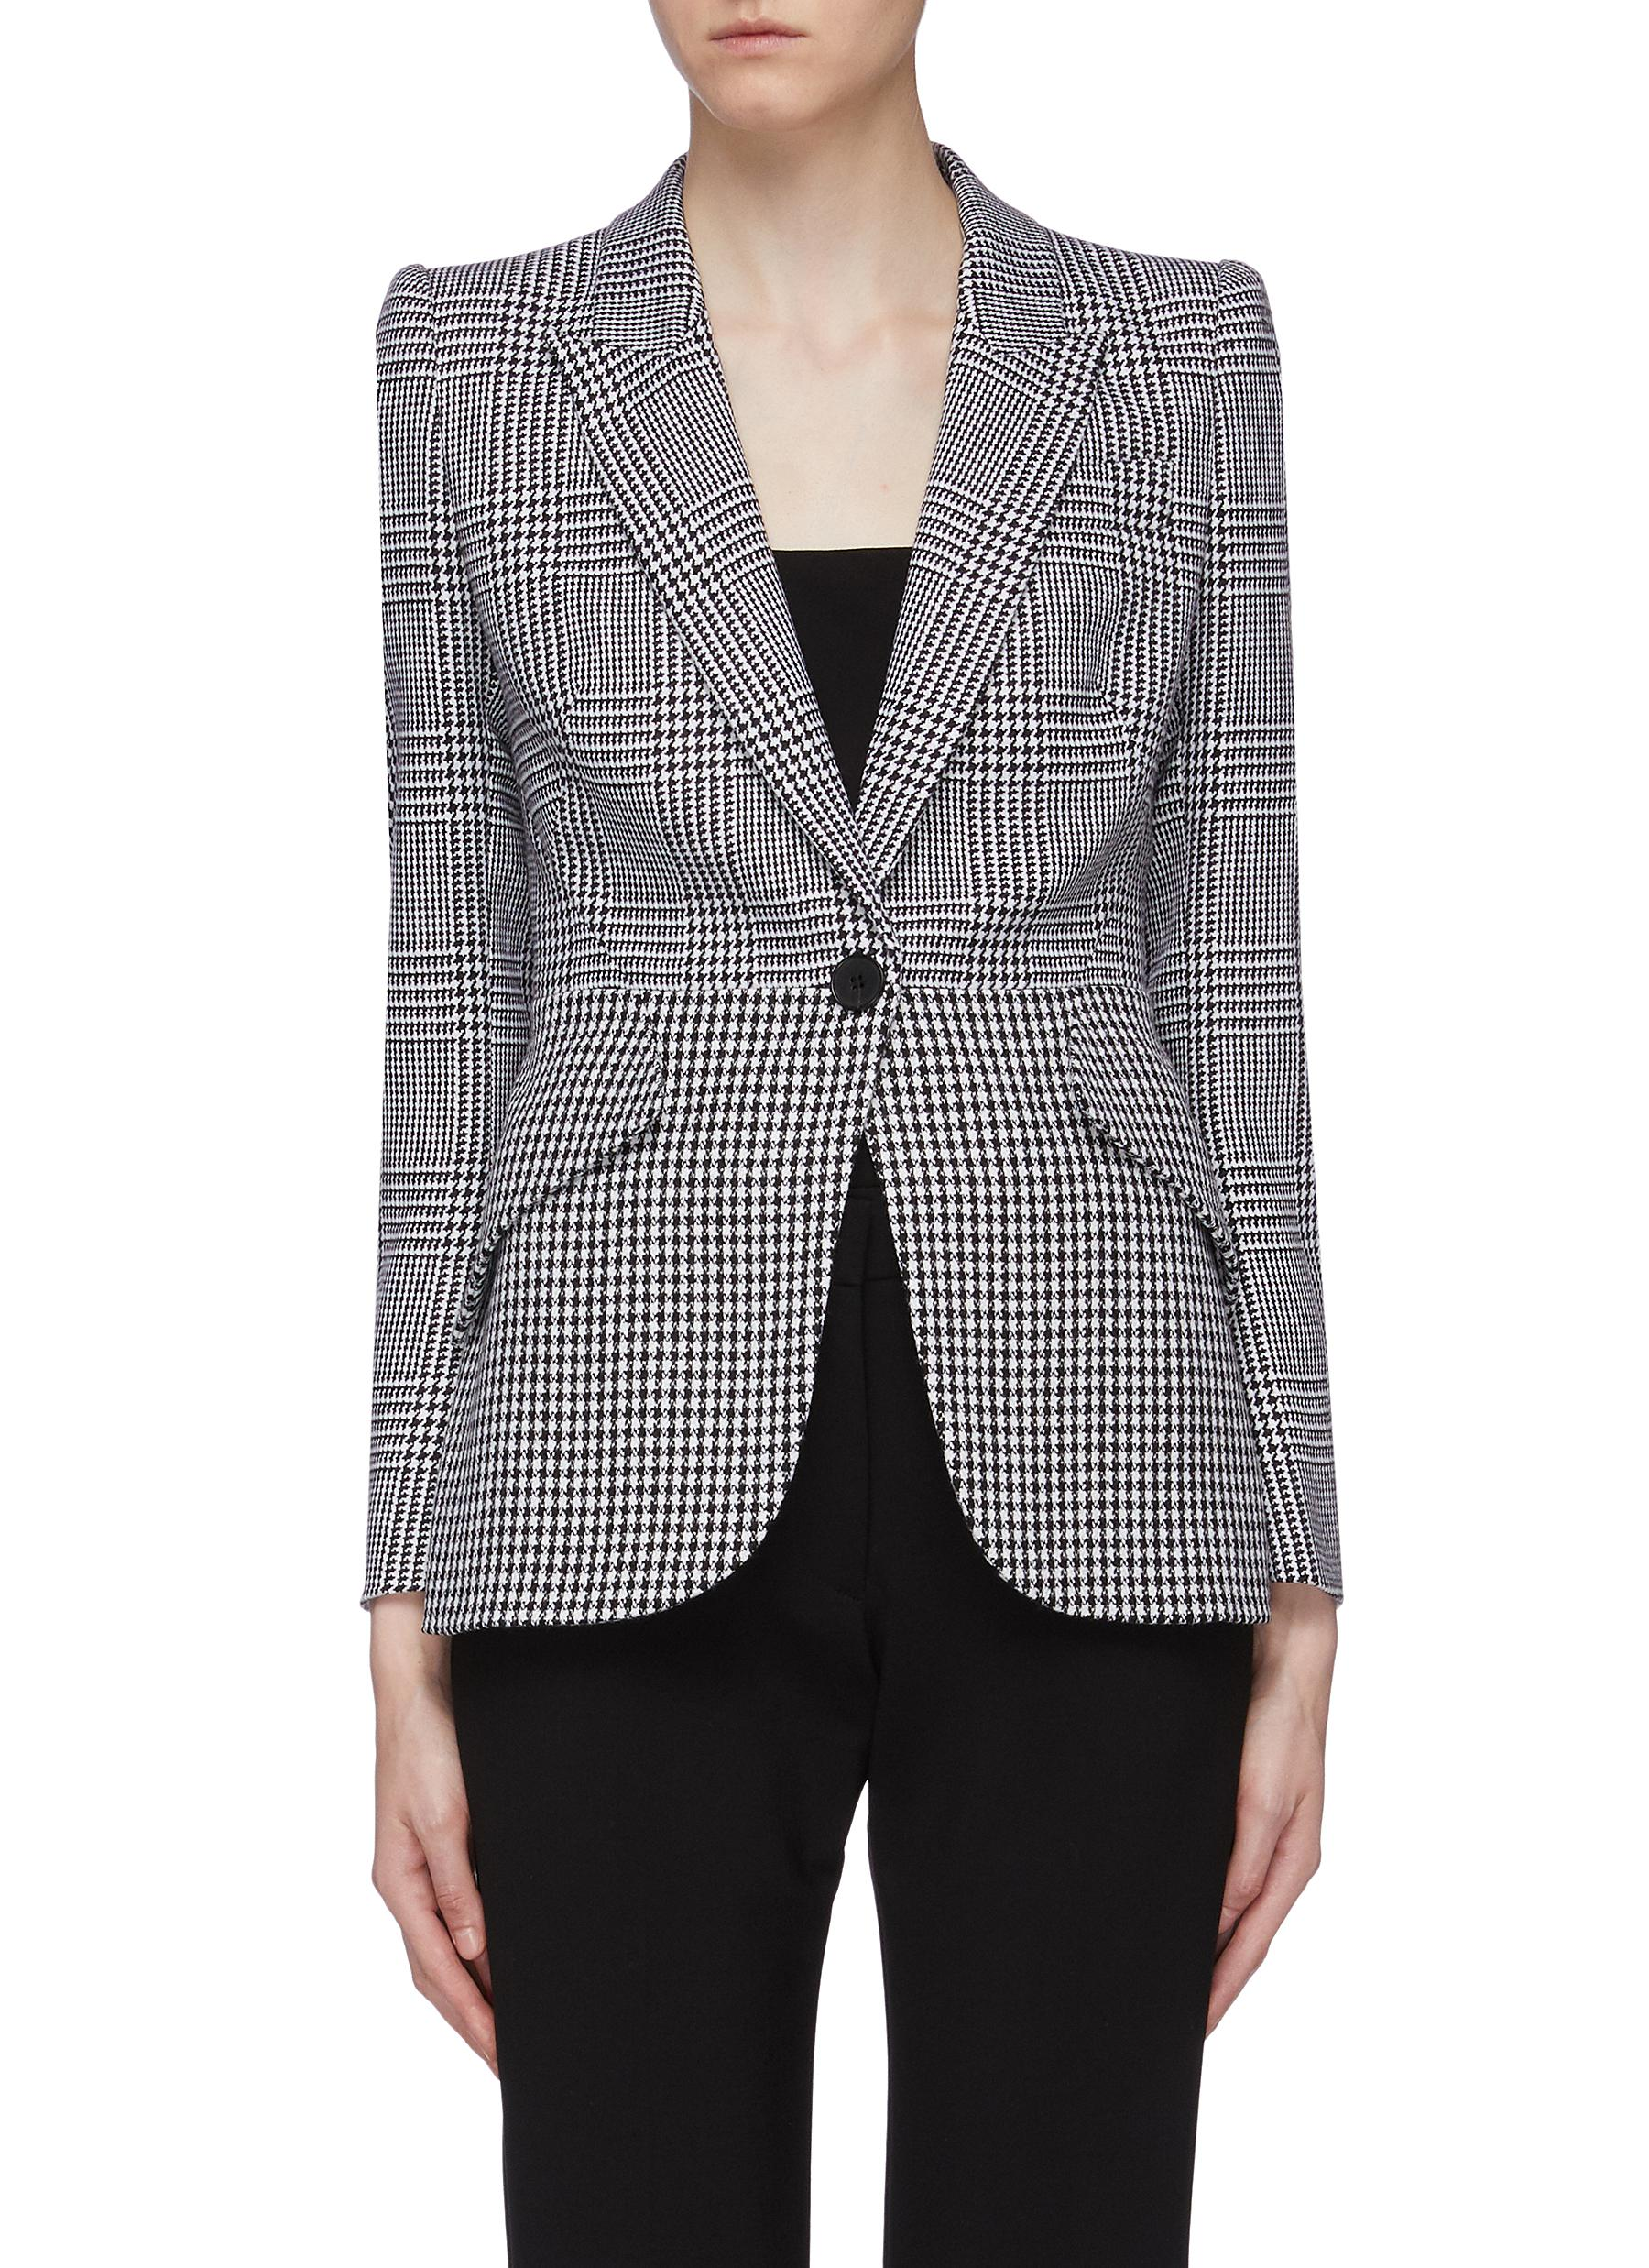 Peaked lapel houndstooth check plaid blazer by Alexander Mcqueen